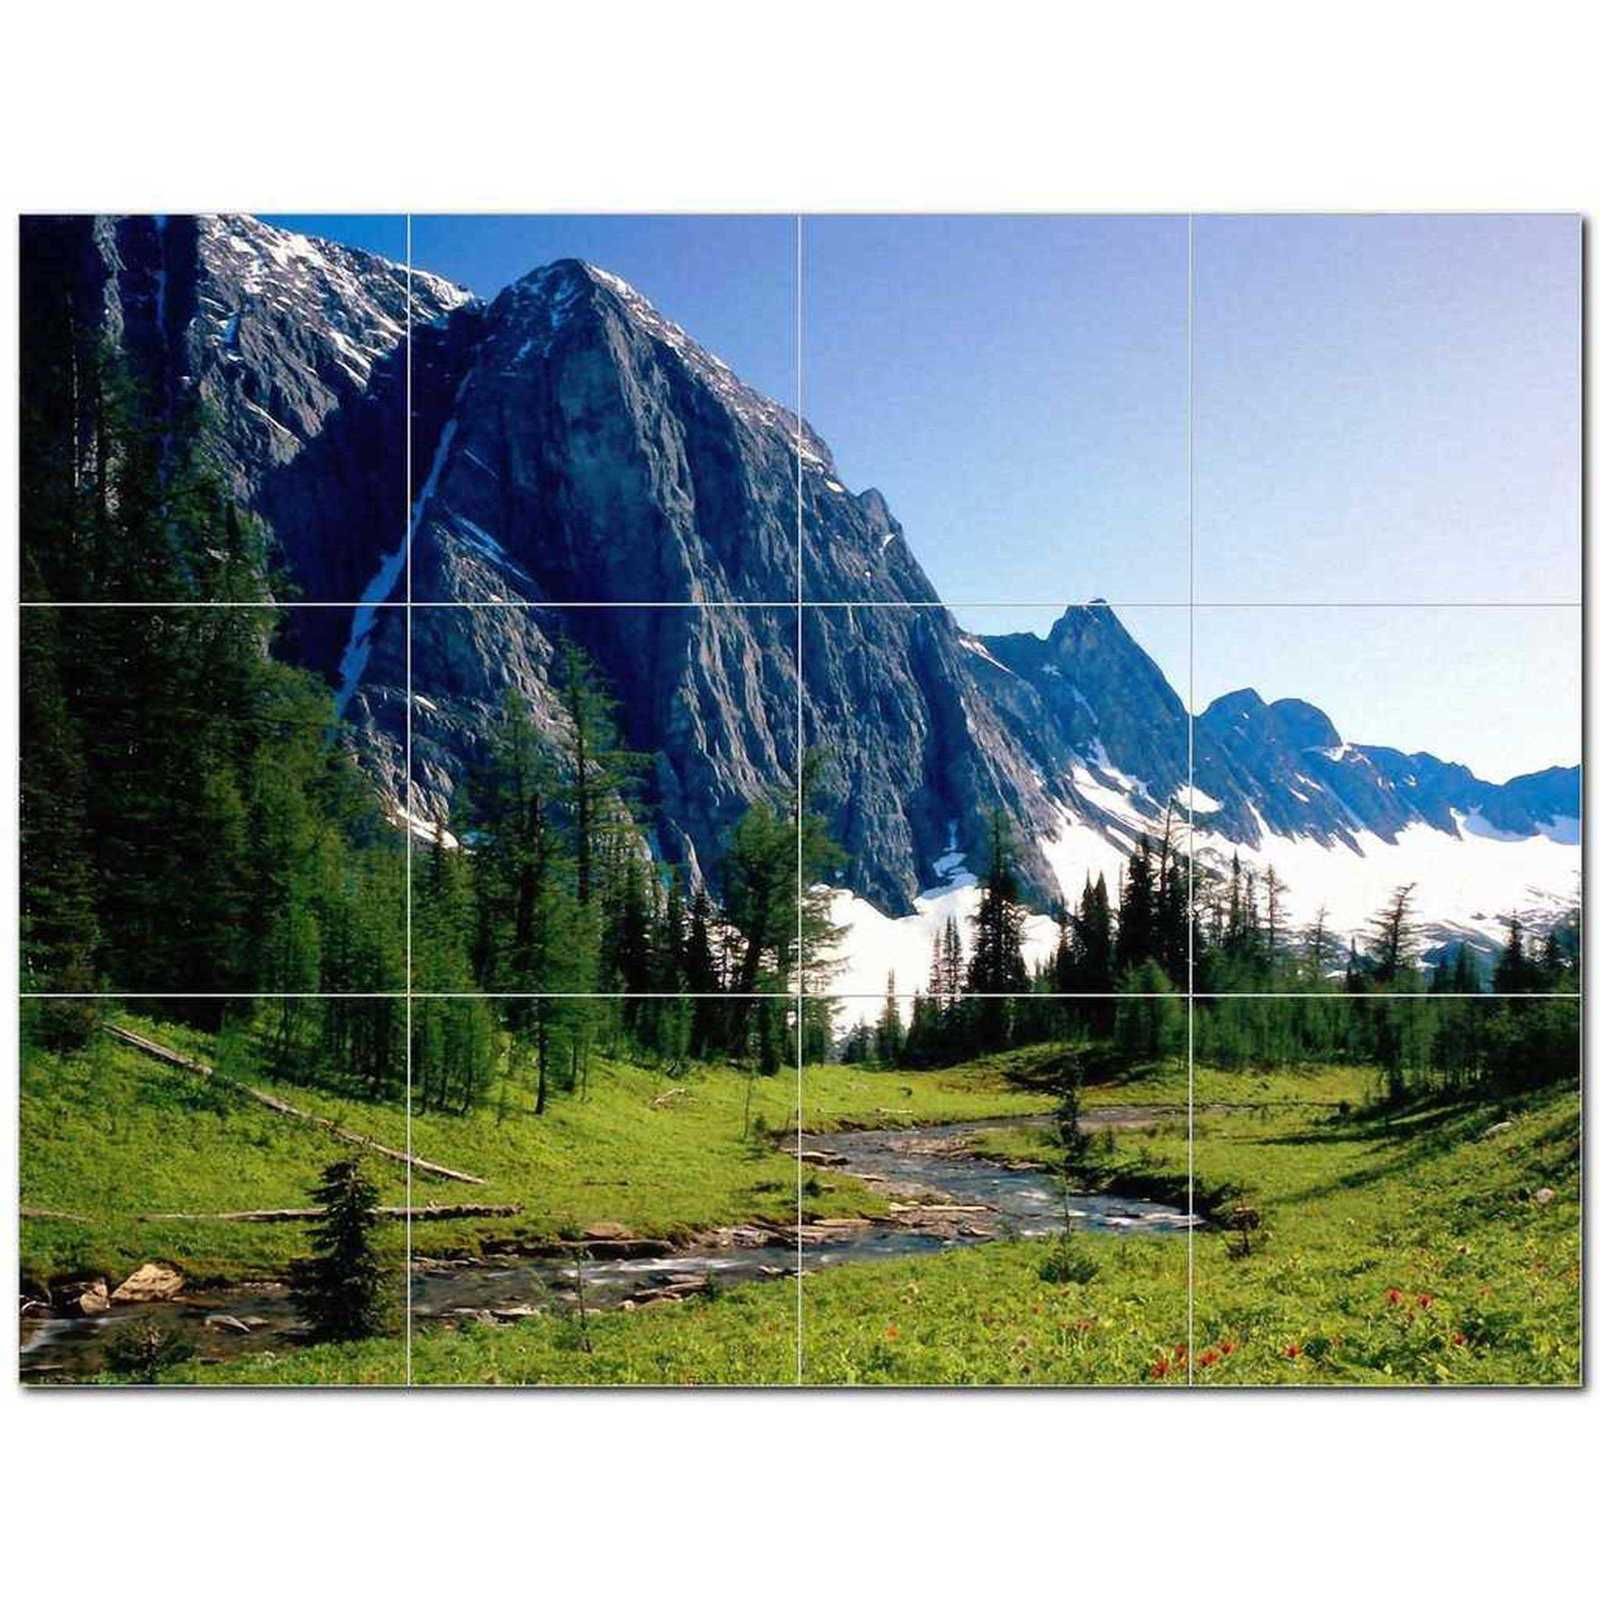 Primary image for National Park Ceramic Tile Mural Kitchen Backsplash Bathroom Shower BAZ405674